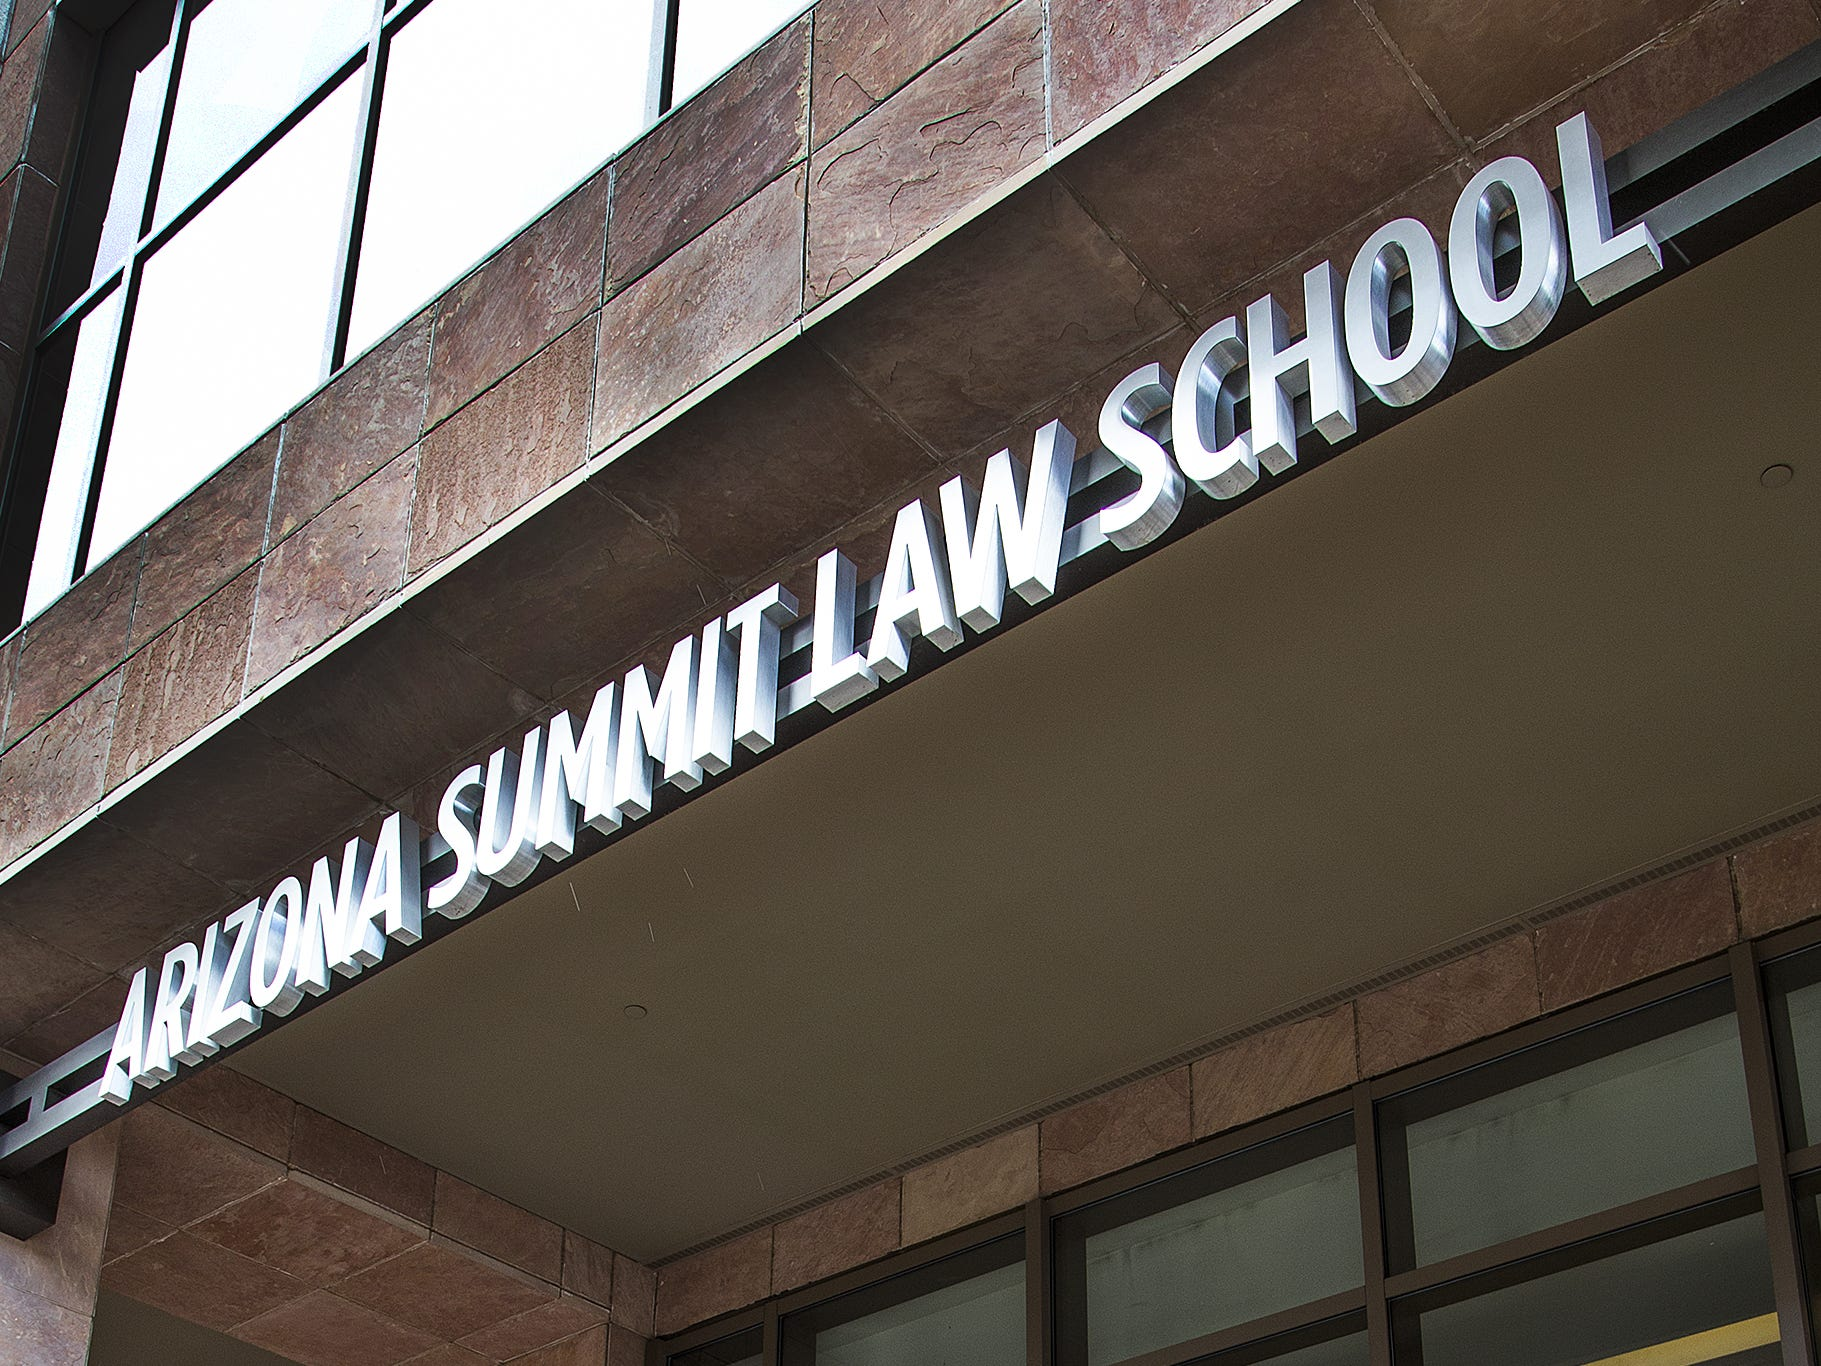 The main entrance of Arizona Summit Law School at 1 North Central in downtown Phoenix in February 2017. School officials announced in fall 2018 that the school will close once current students finish in May 2020. Students are now finishing up their degrees by taking classes at other law schools.